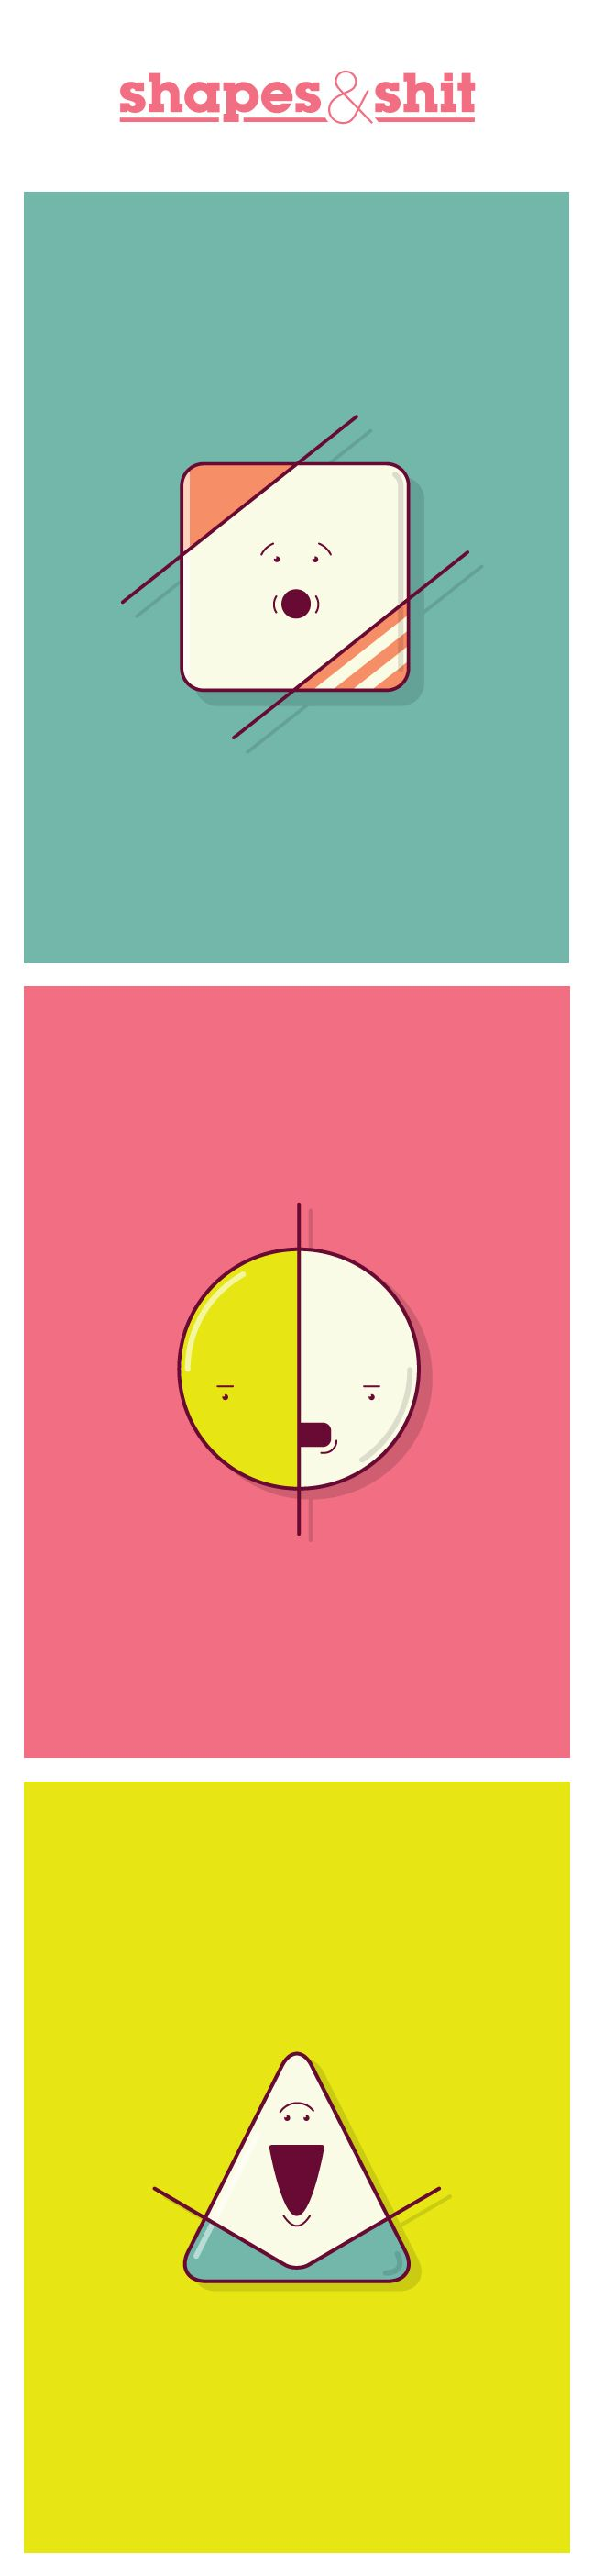 A few shapely friends. shapes, illustration, vector, design, cartoon, character